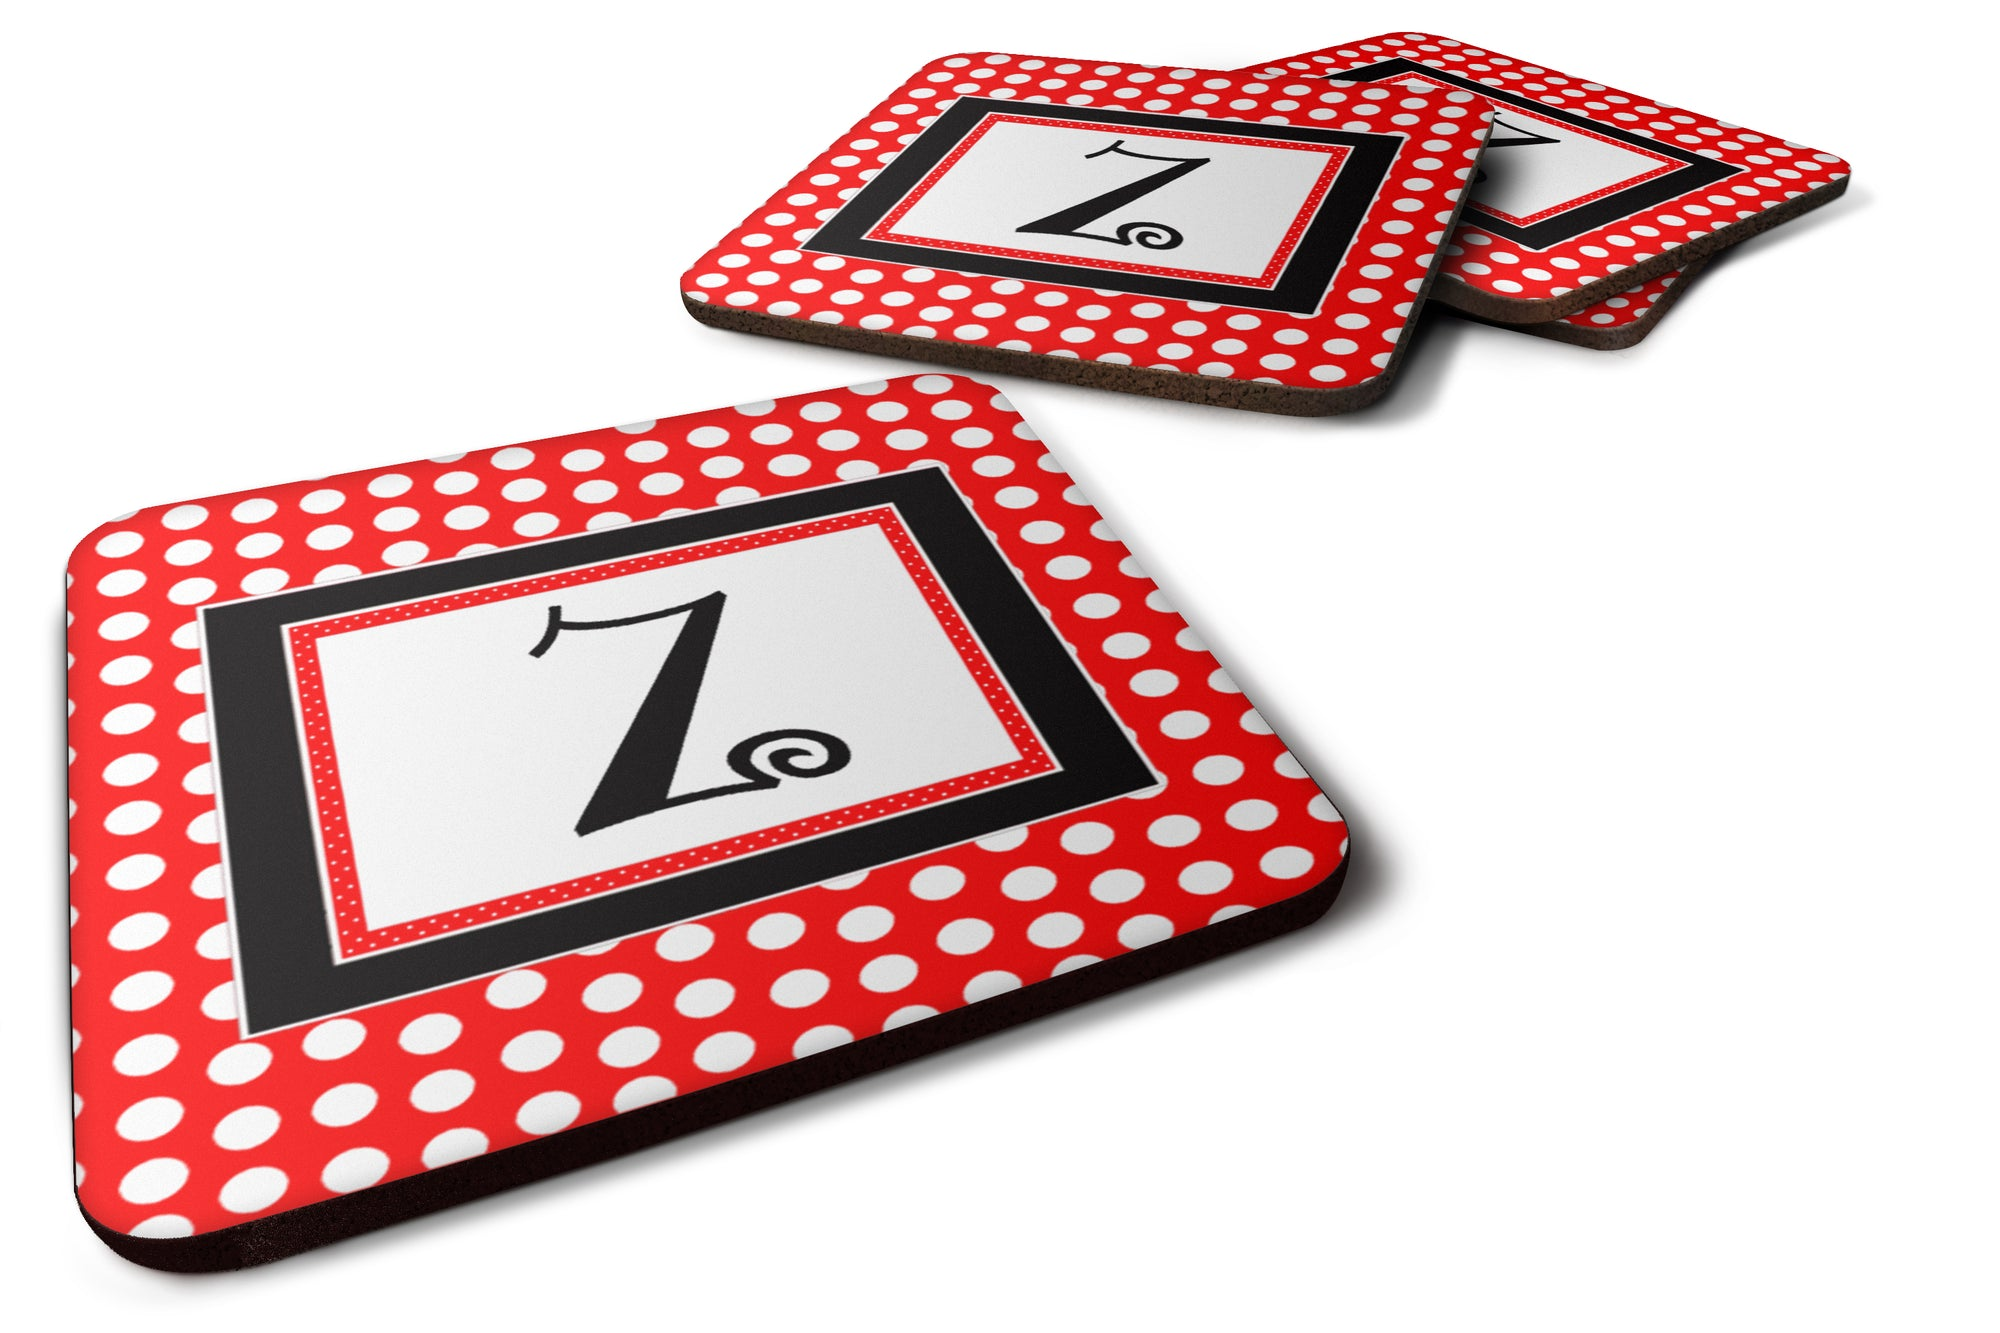 Set of 4 Monogram - Red Black Polka Dots Foam Coasters Initial Letter Z by Caroline's Treasures